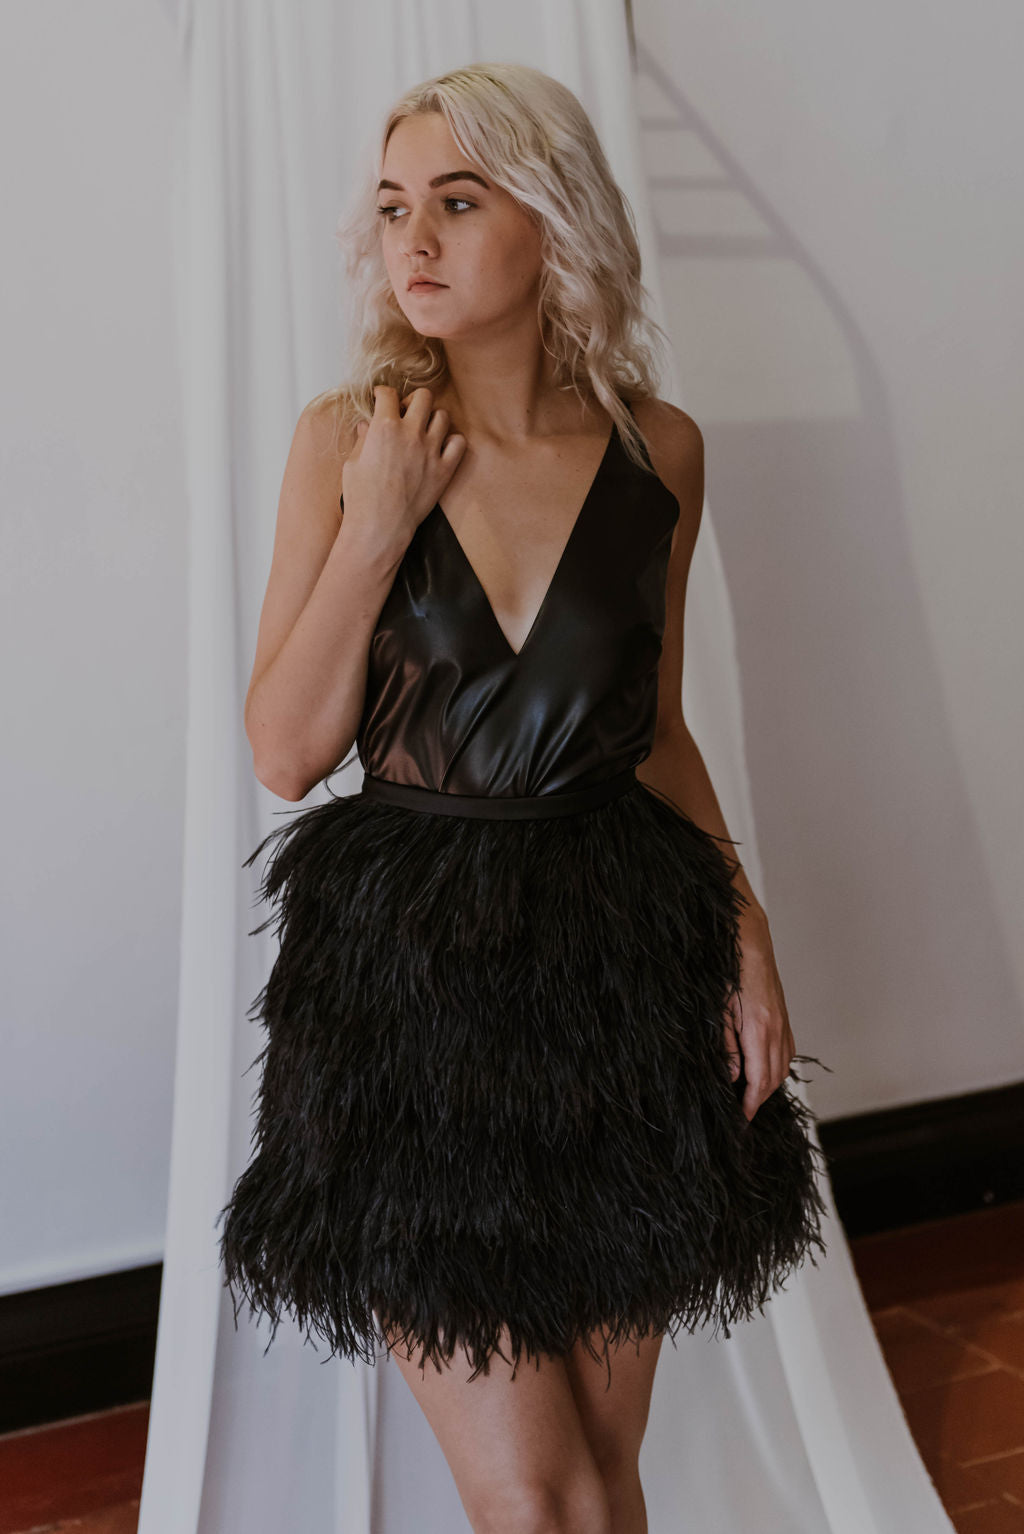 The Ostrich Feather Skirt